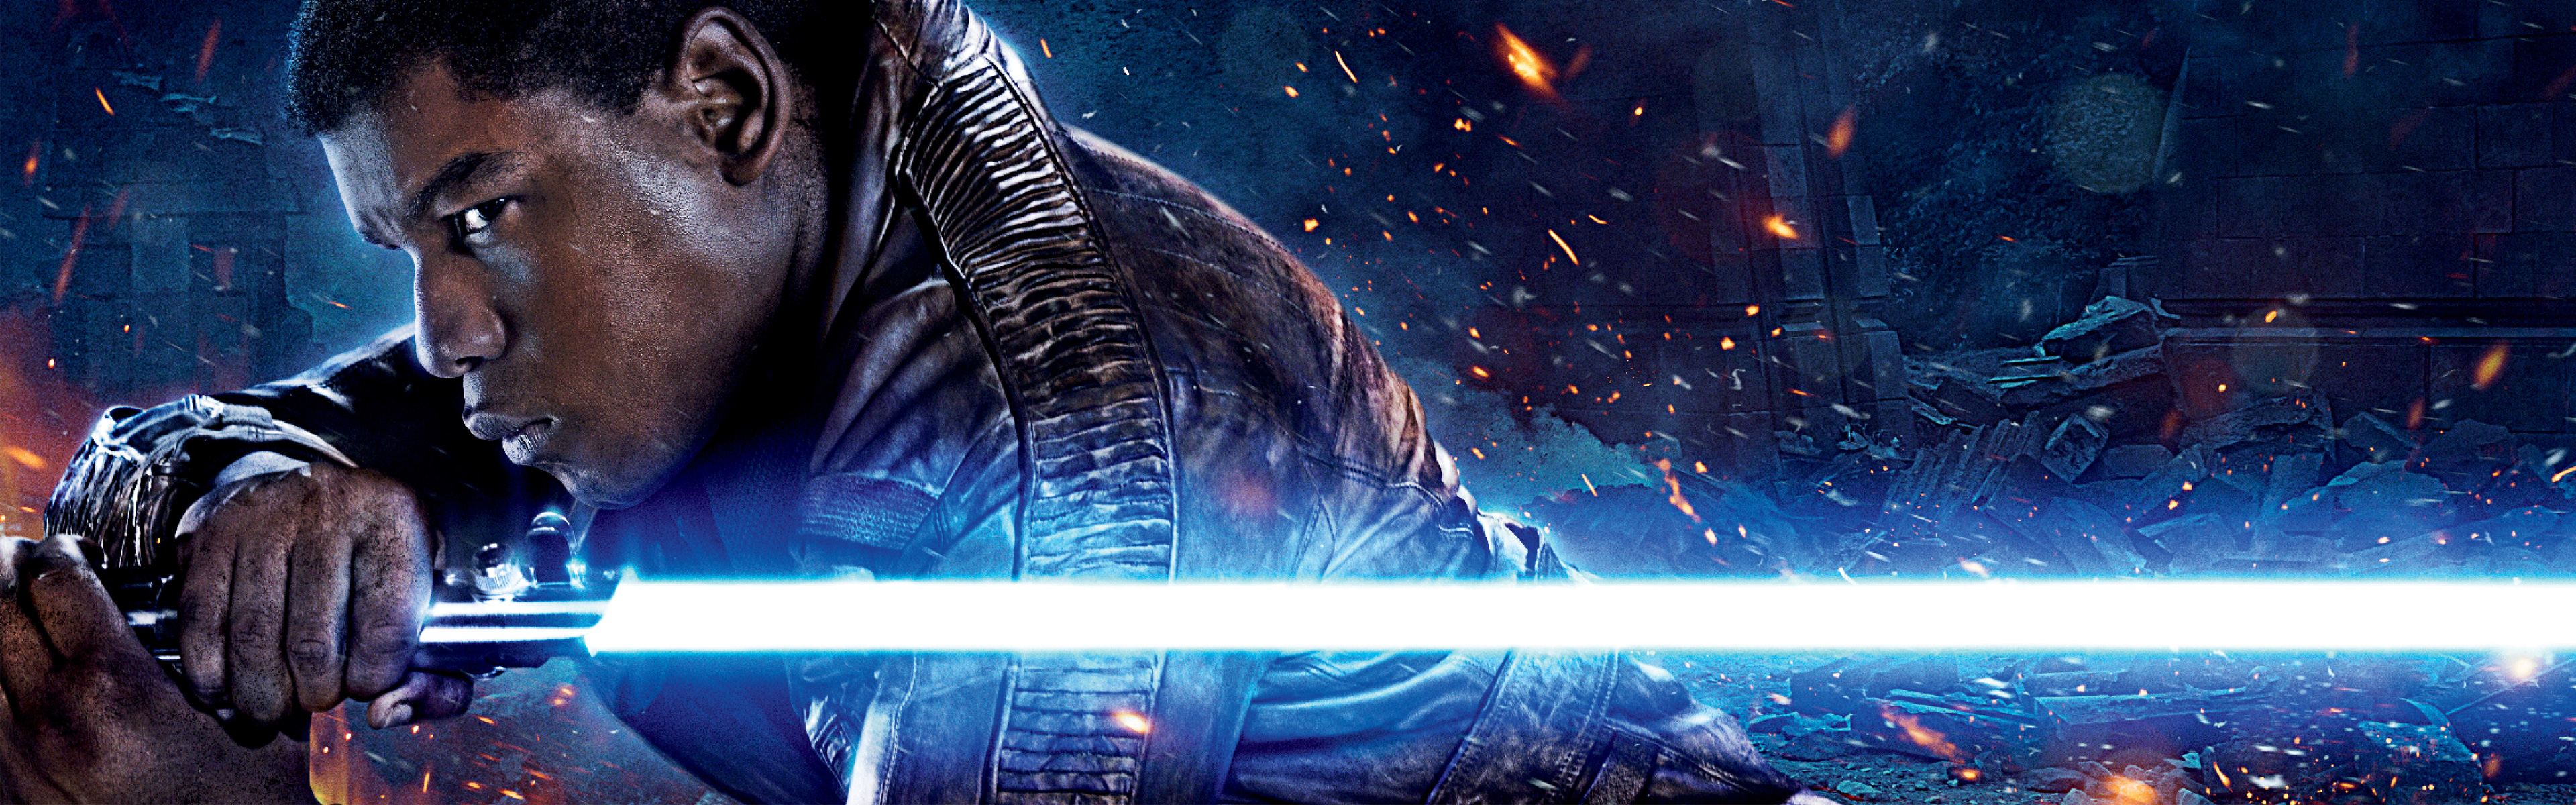 Wallpaper Abyss Explore the Collection Star Wars Movie Star Wars 3840x1200